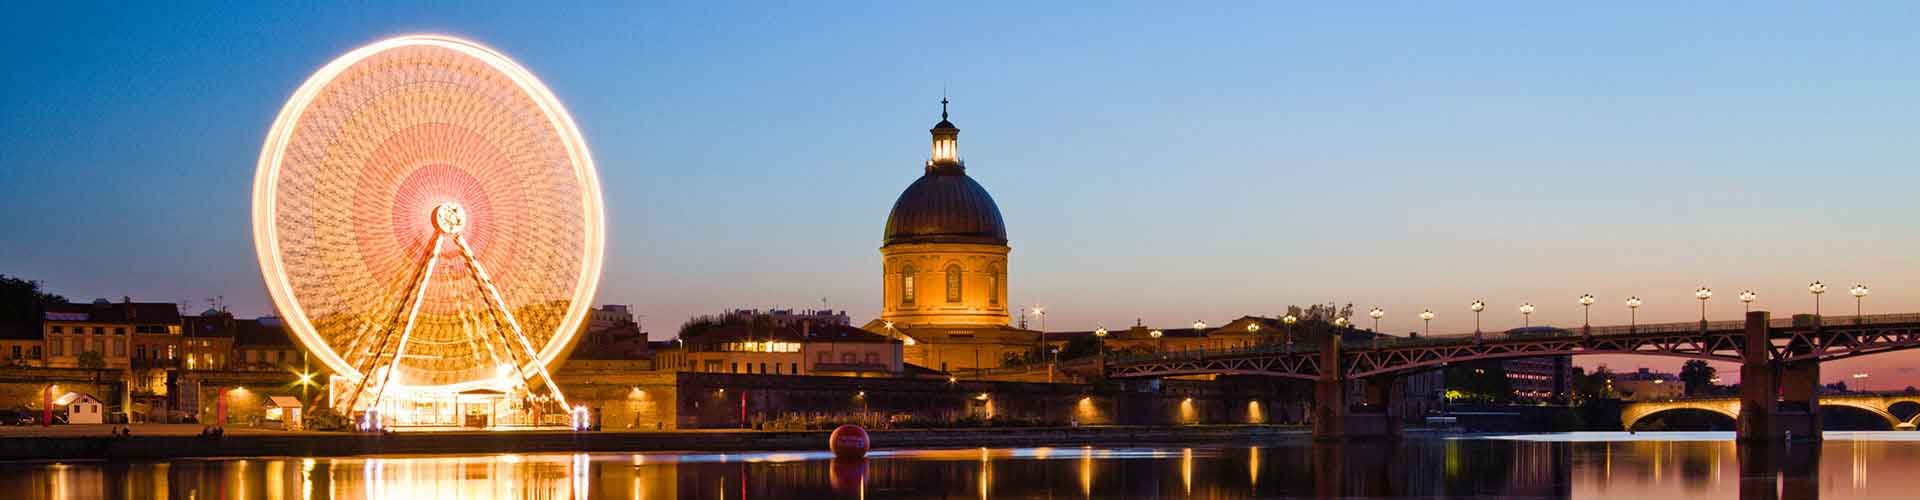 Toulouse Grenoble Bus Toulouse Hostels In Toulouse Herbergen Hostels